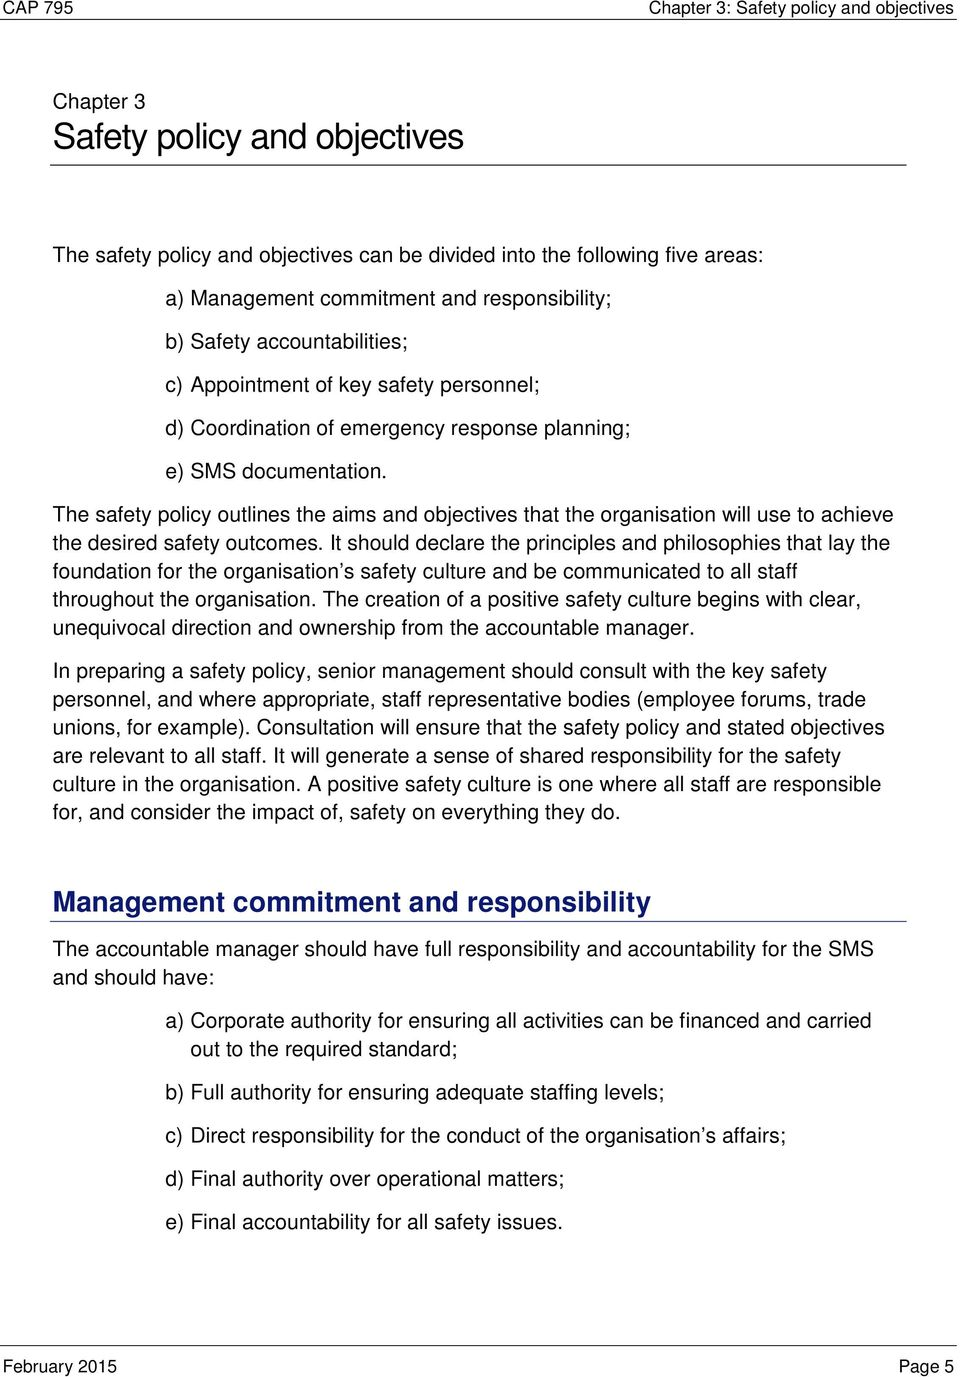 The safety policy outlines the aims and objectives that the organisation will use to achieve the desired safety outcomes.